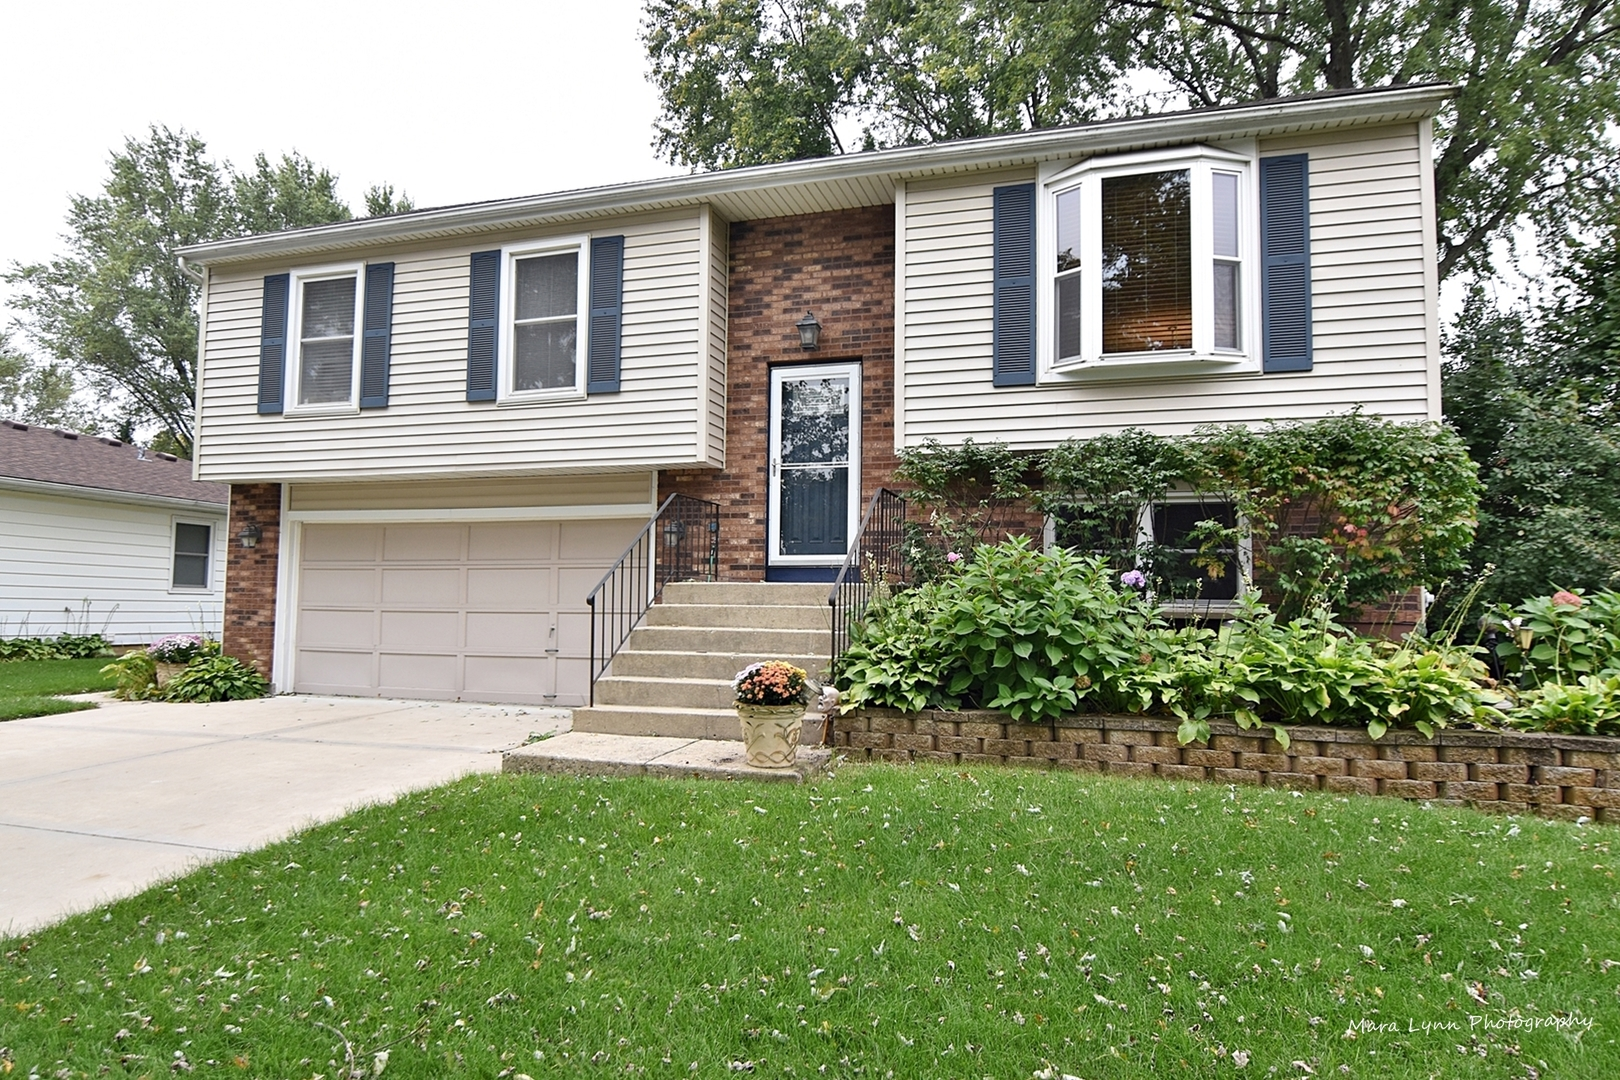 Photo for 912 Independence Avenue, St. Charles, IL 60174 (MLS # 10561018)